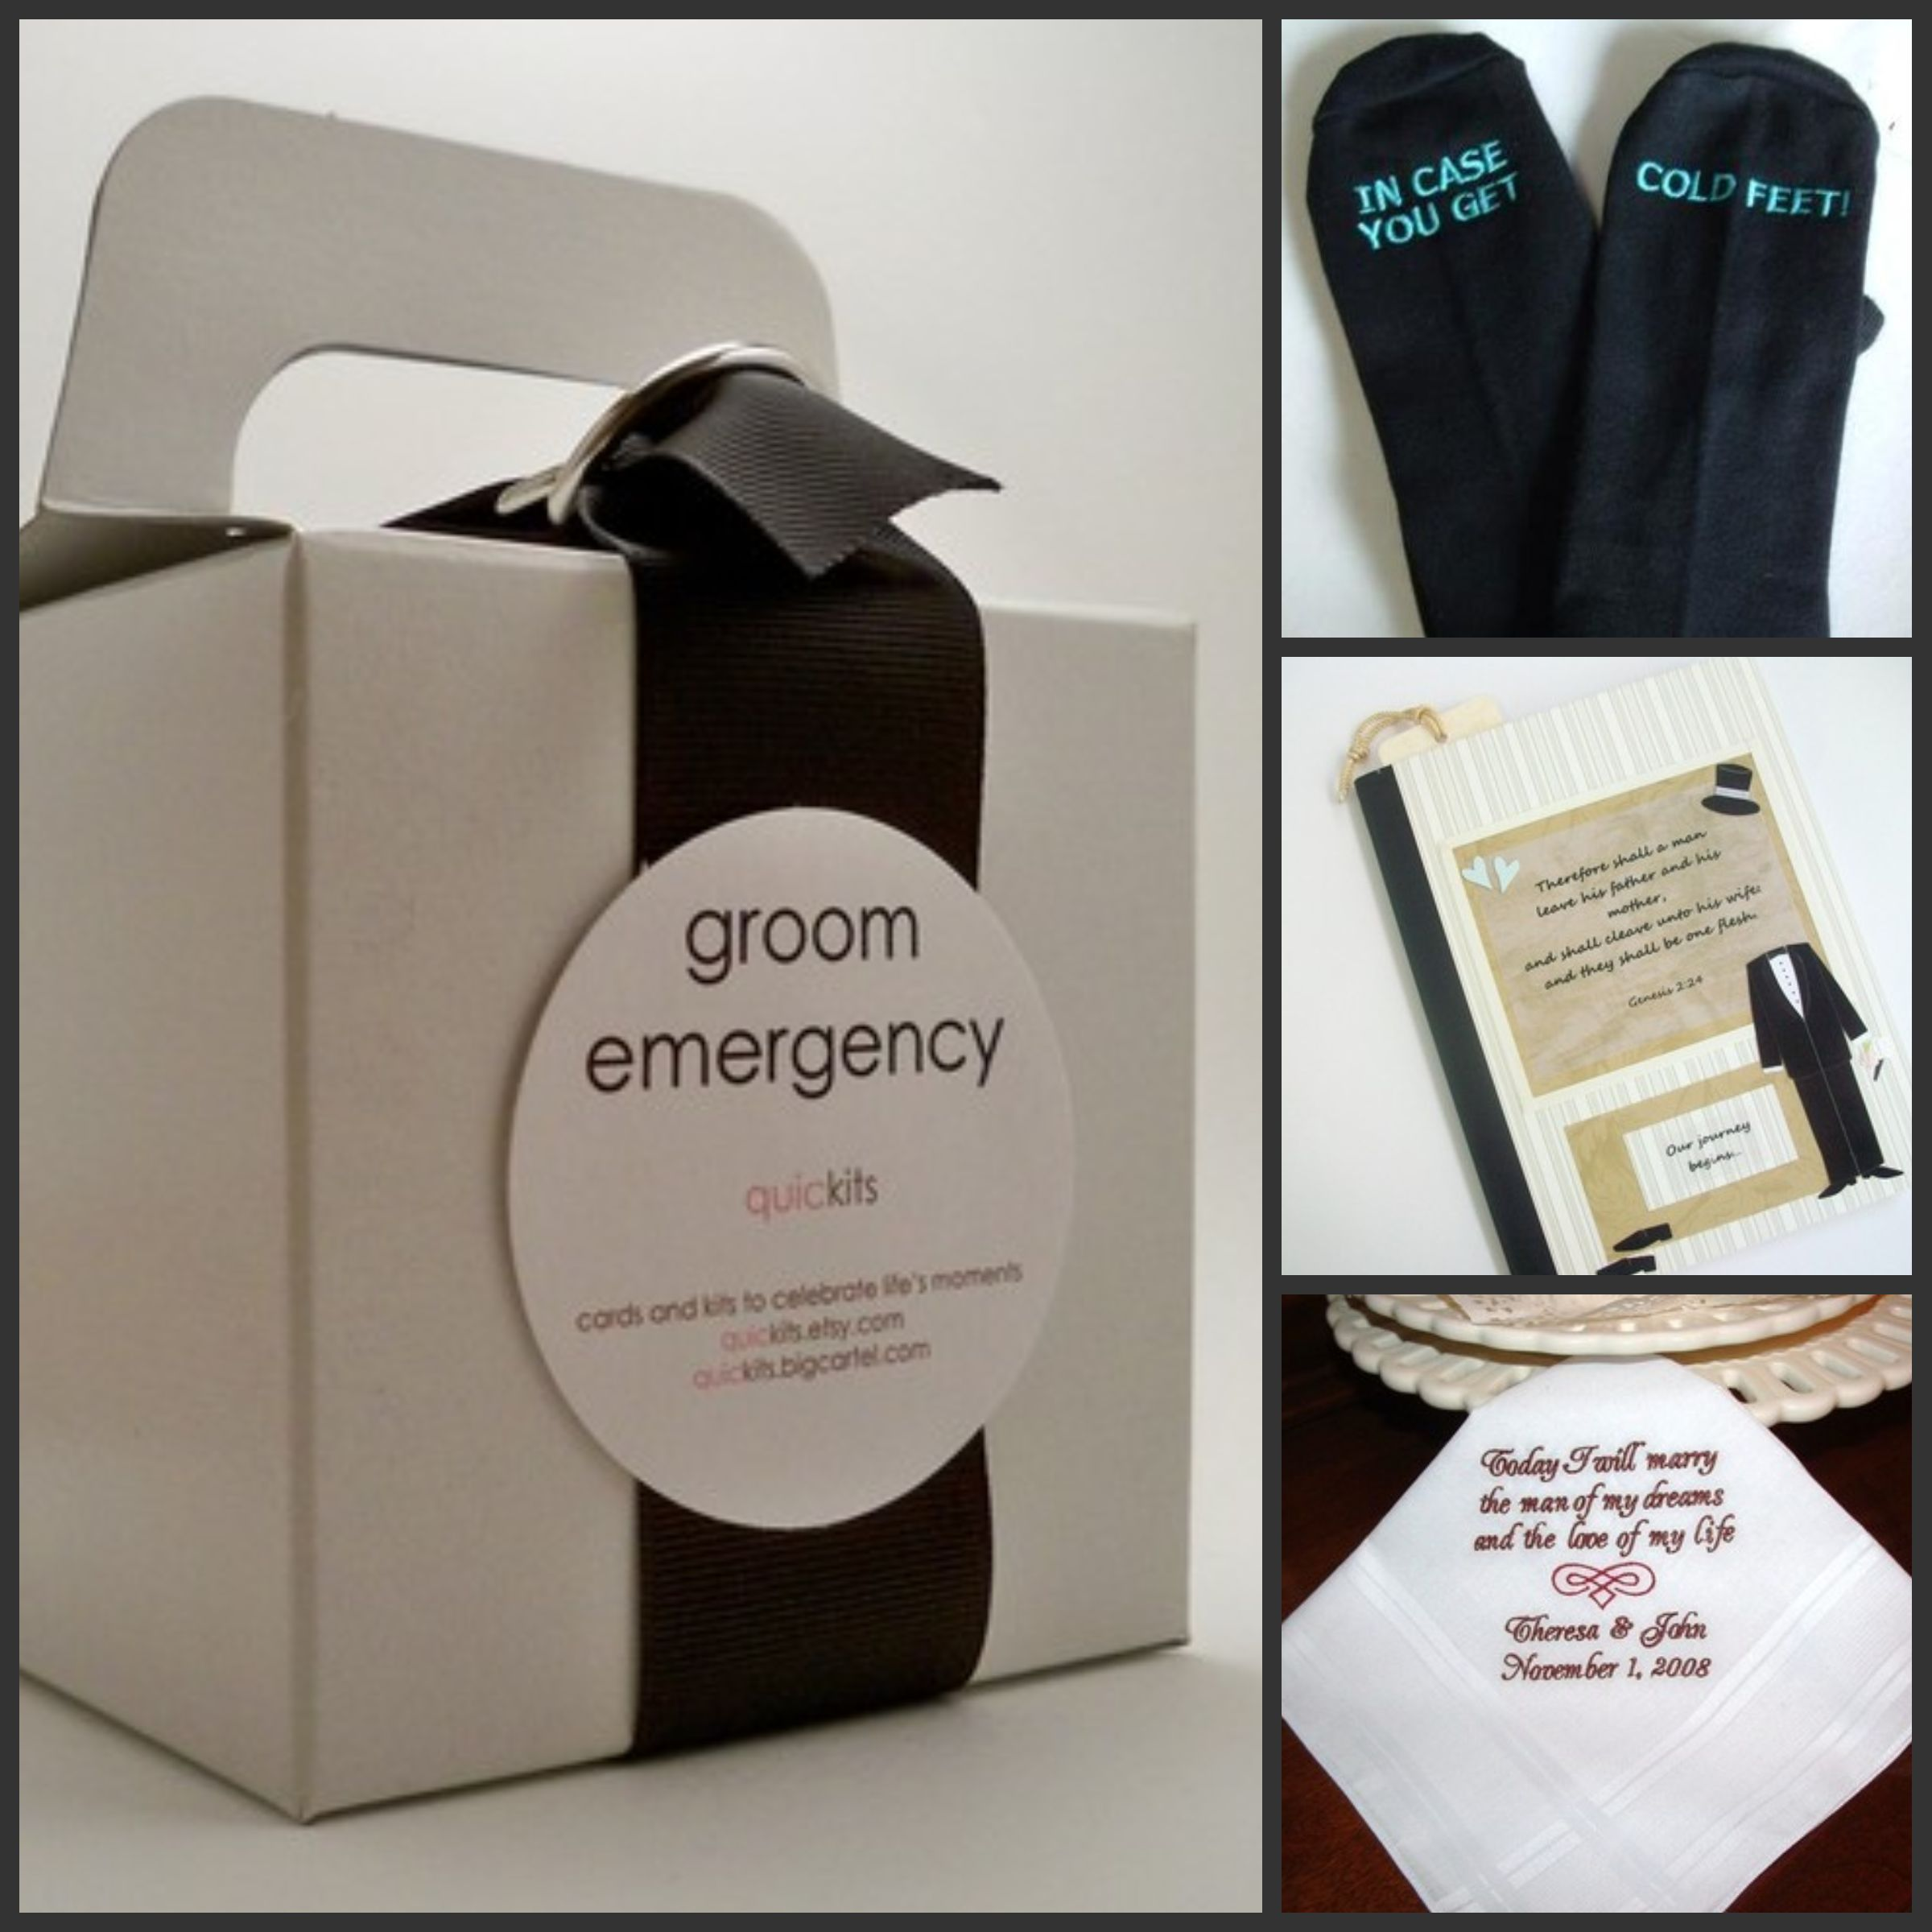 Best Wedding Gifts Groom To Bride : personal gifts for your groom clockwise from left groom emergency kit ...